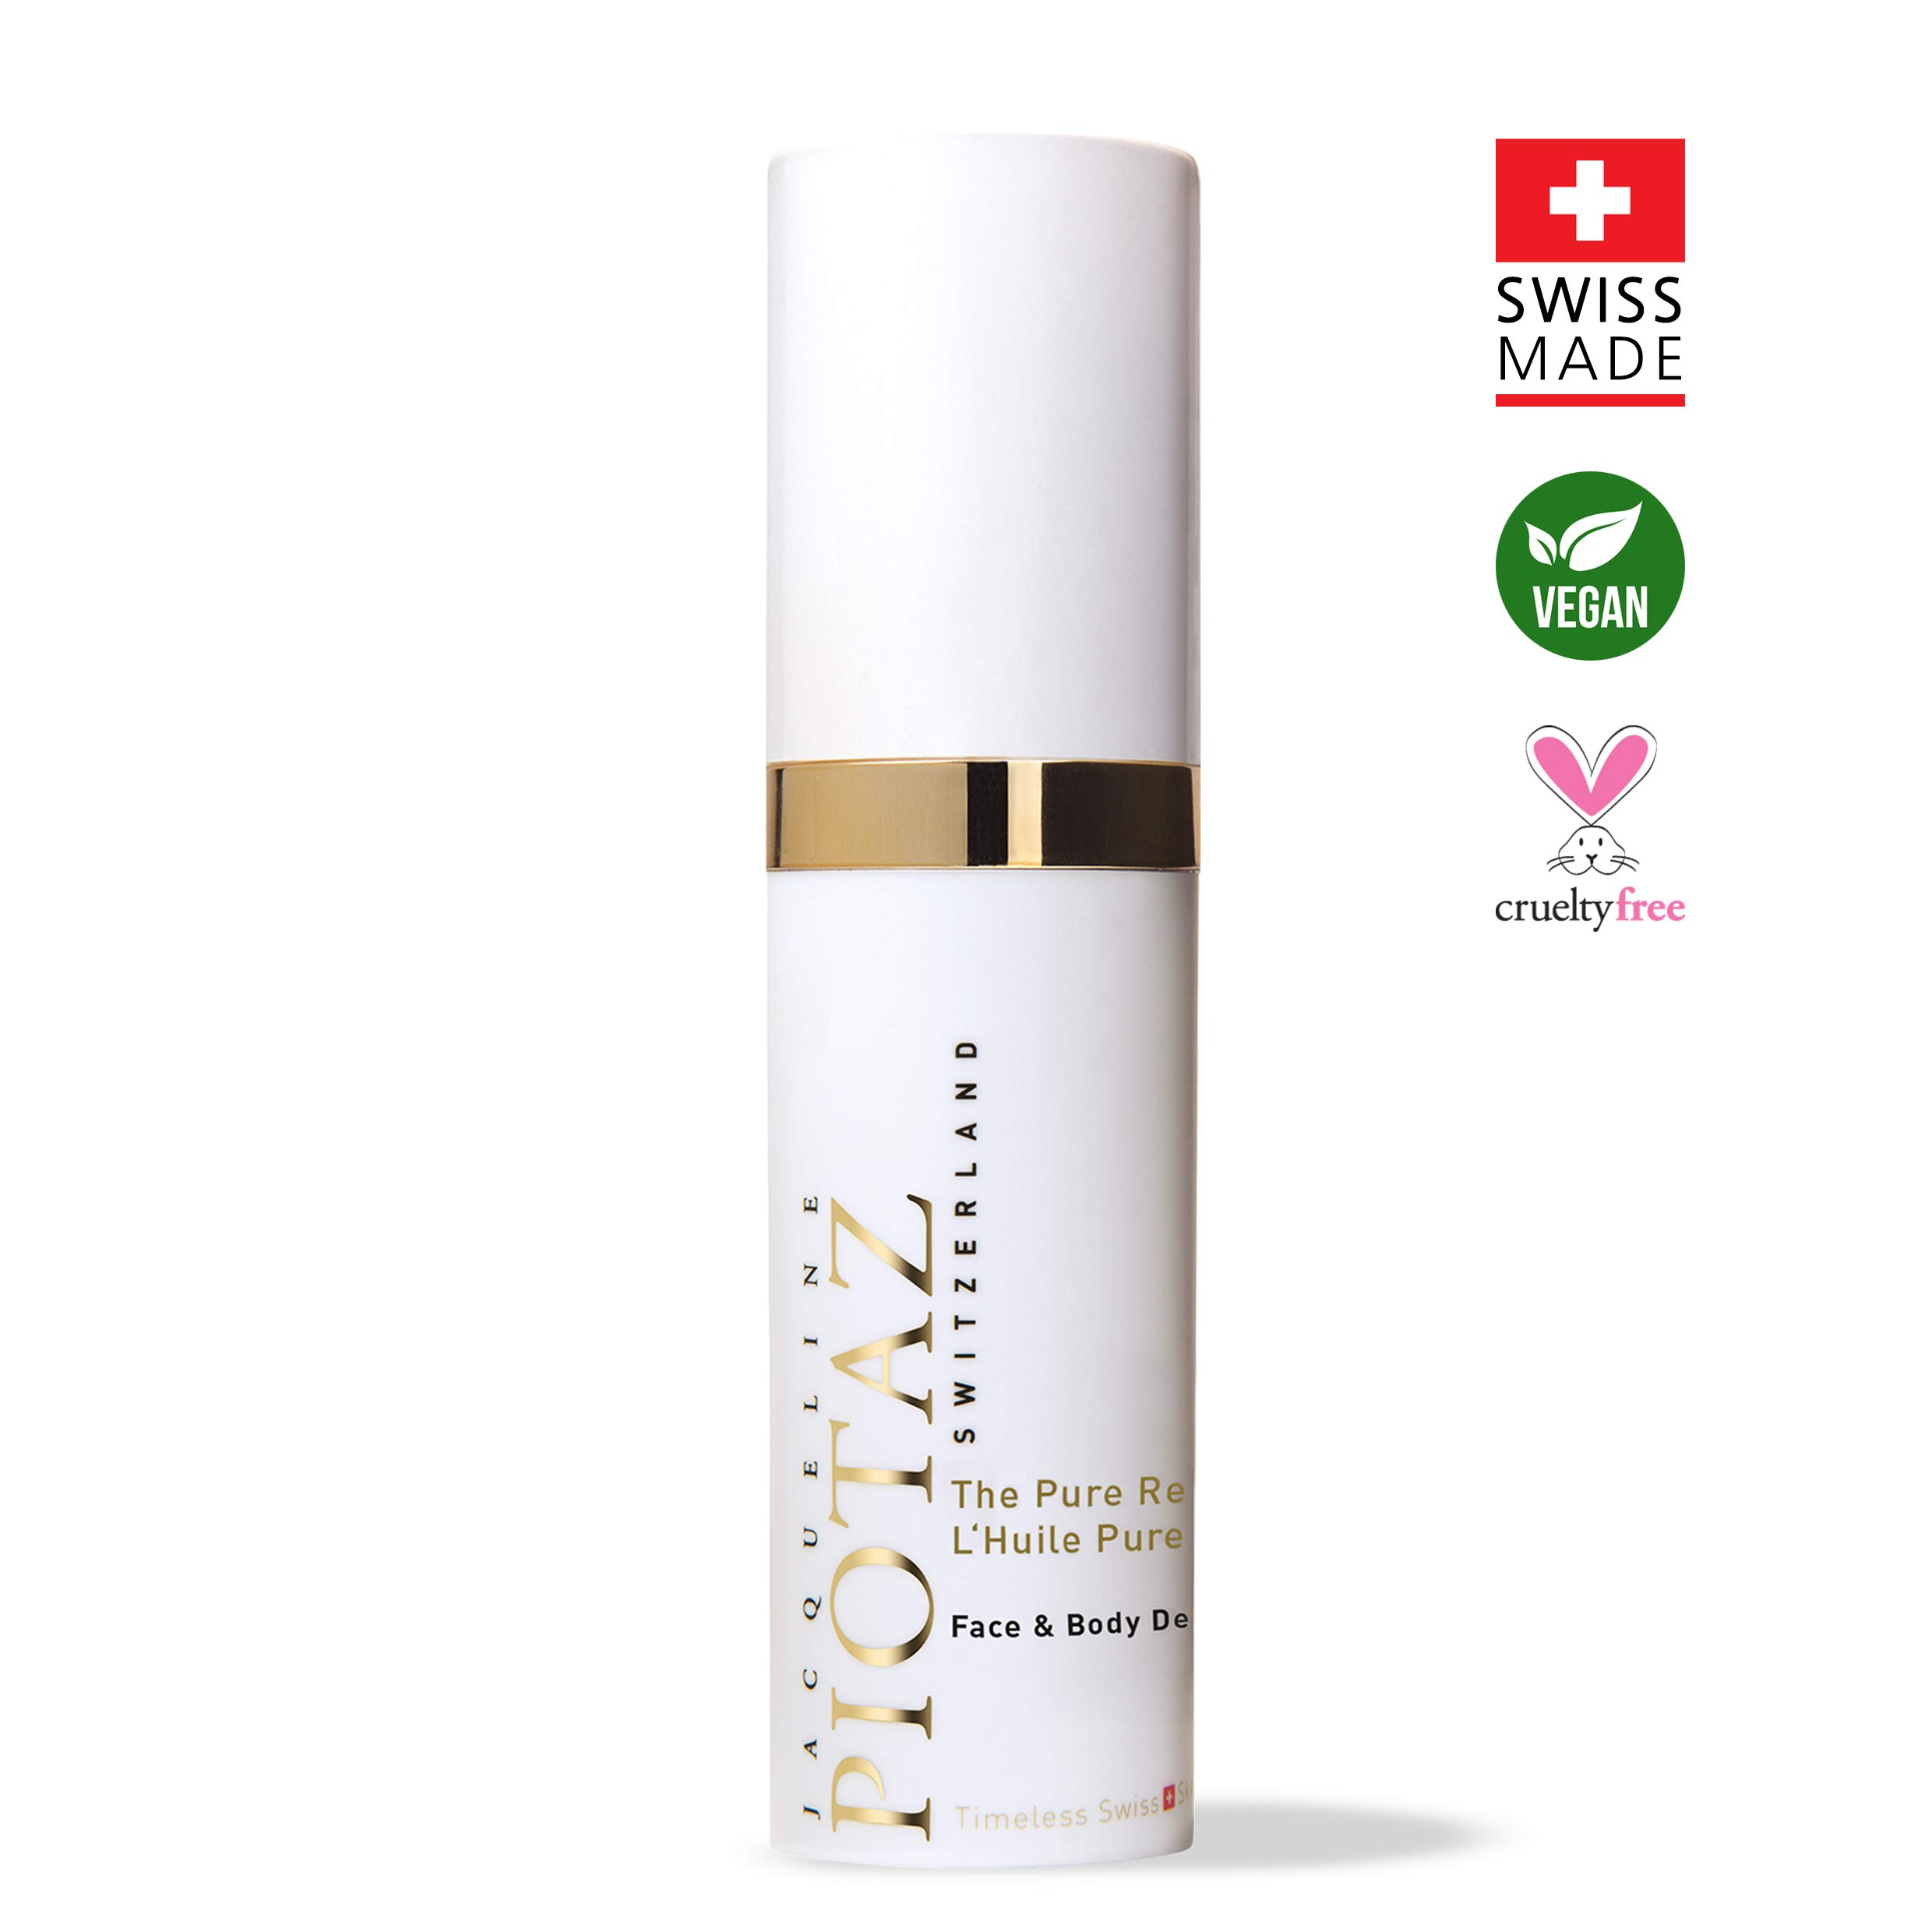 The Pure Revitalizing Oil by Jacqueline Piotaz - Hydrating Moisturizer, Soothing, Protecting Dry Skin, Advanced Healing, Anti-Aging Formula, Made with 100% Dry Oil (60 mL)